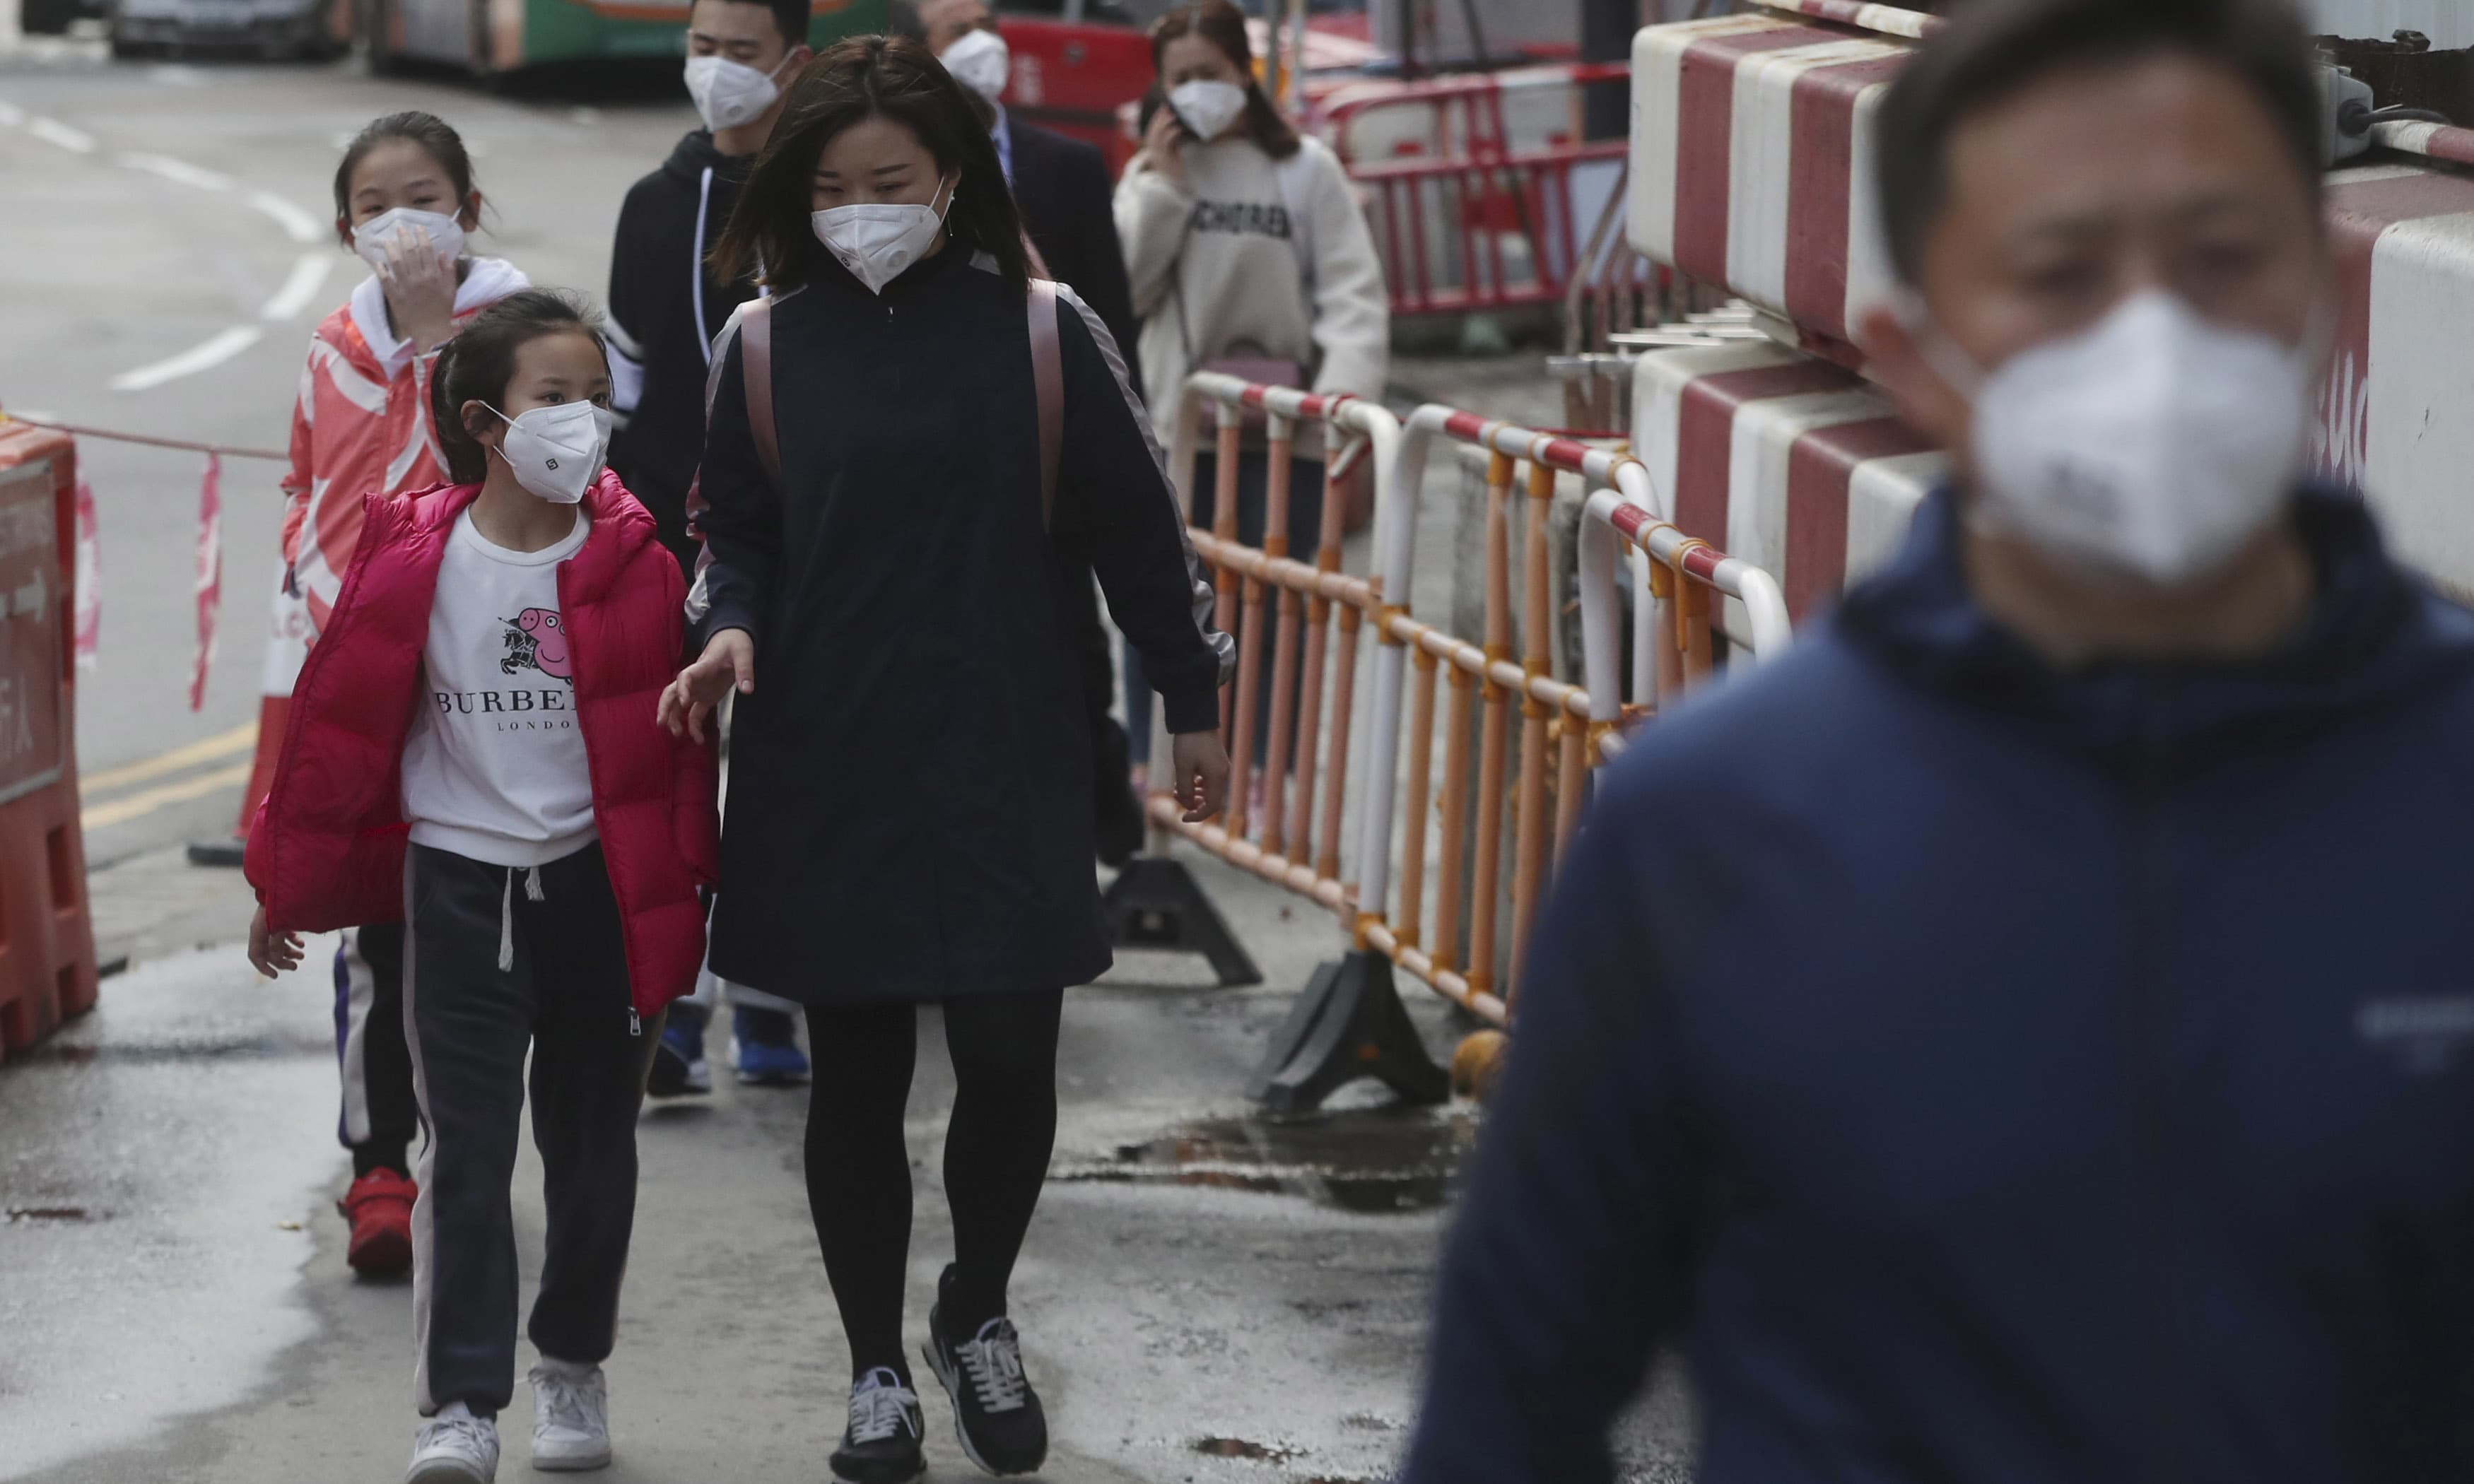 More than 63,000 people have now been infected nationwide and 1,380 have died. — AP